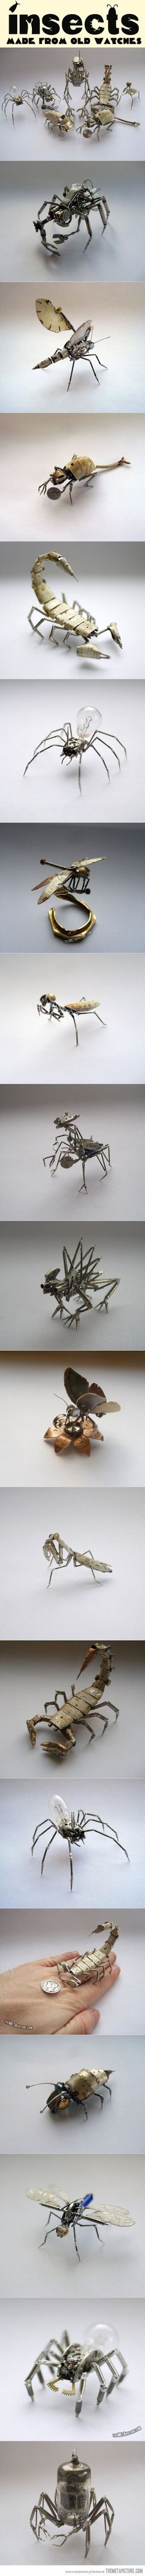 Insects made from old watches - Steampunk